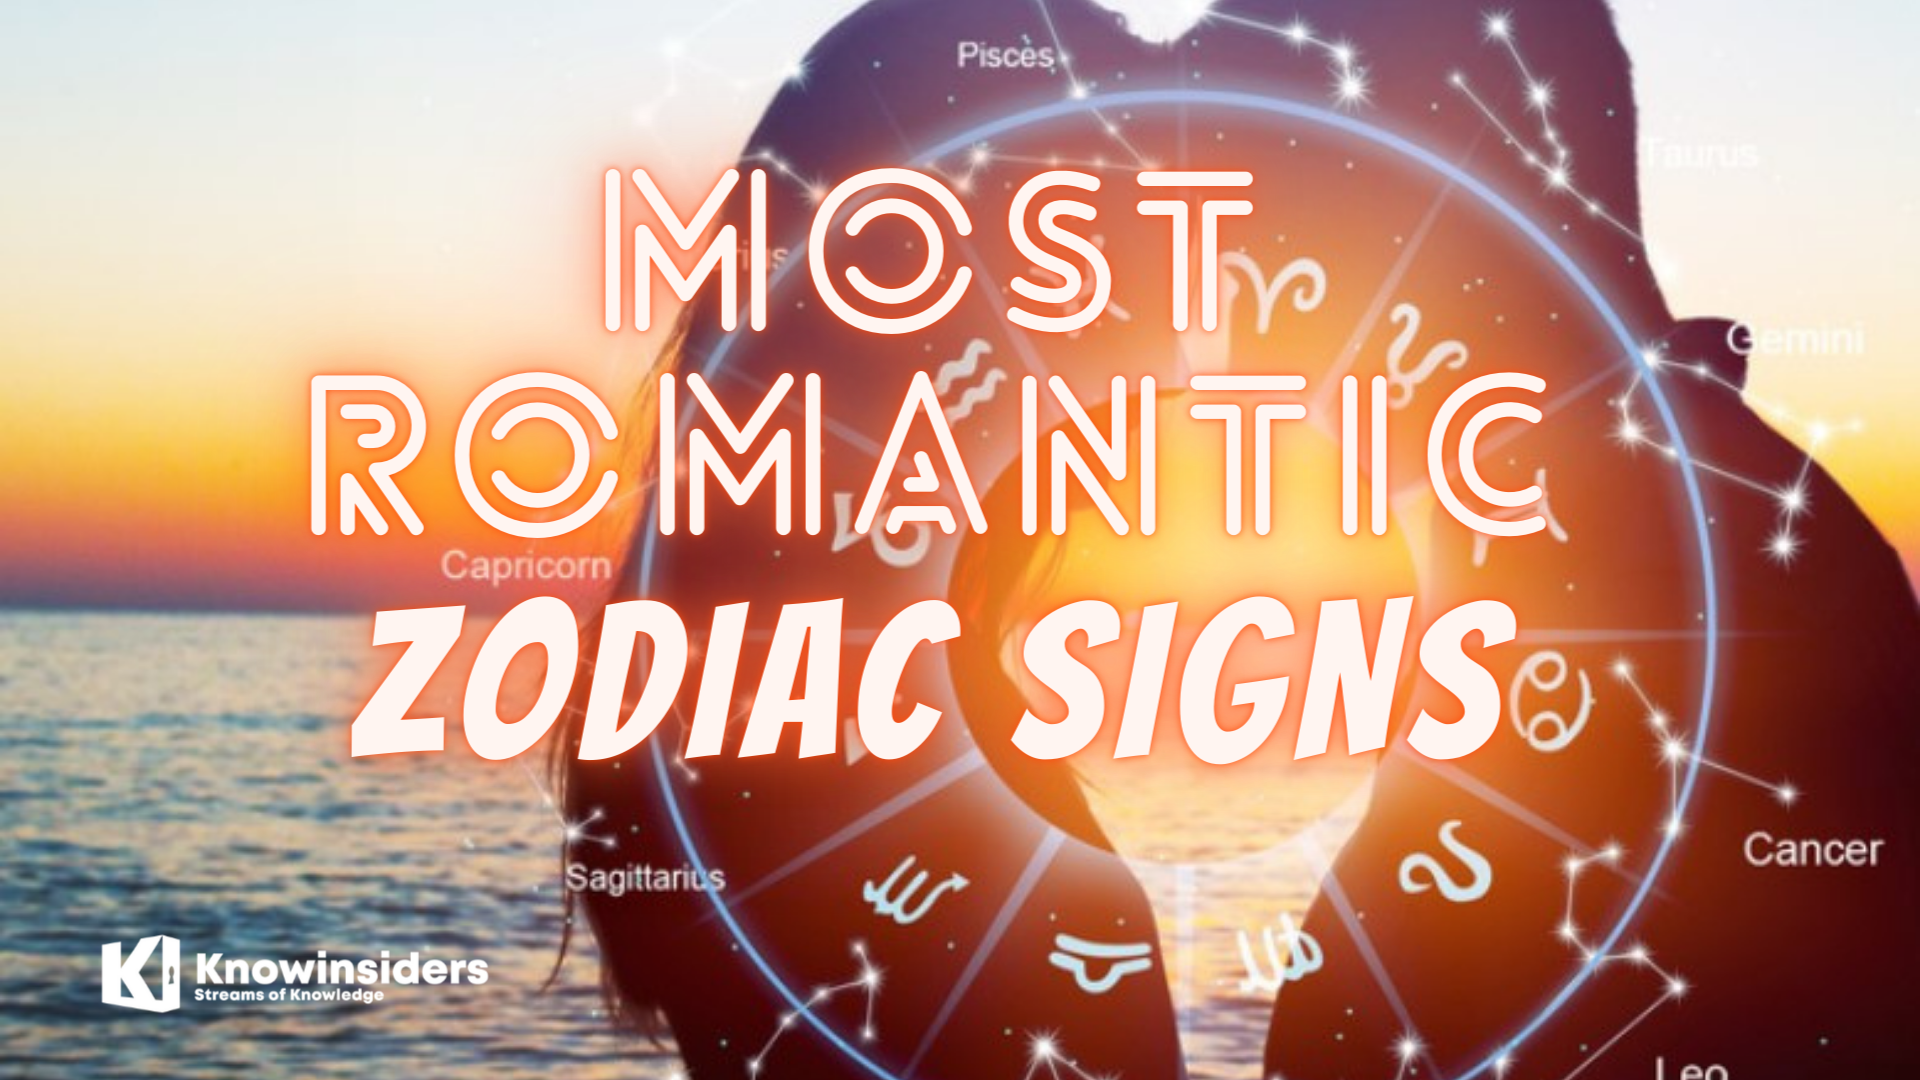 Top 5 Most Romantic Zodiac Signs According To Astrology